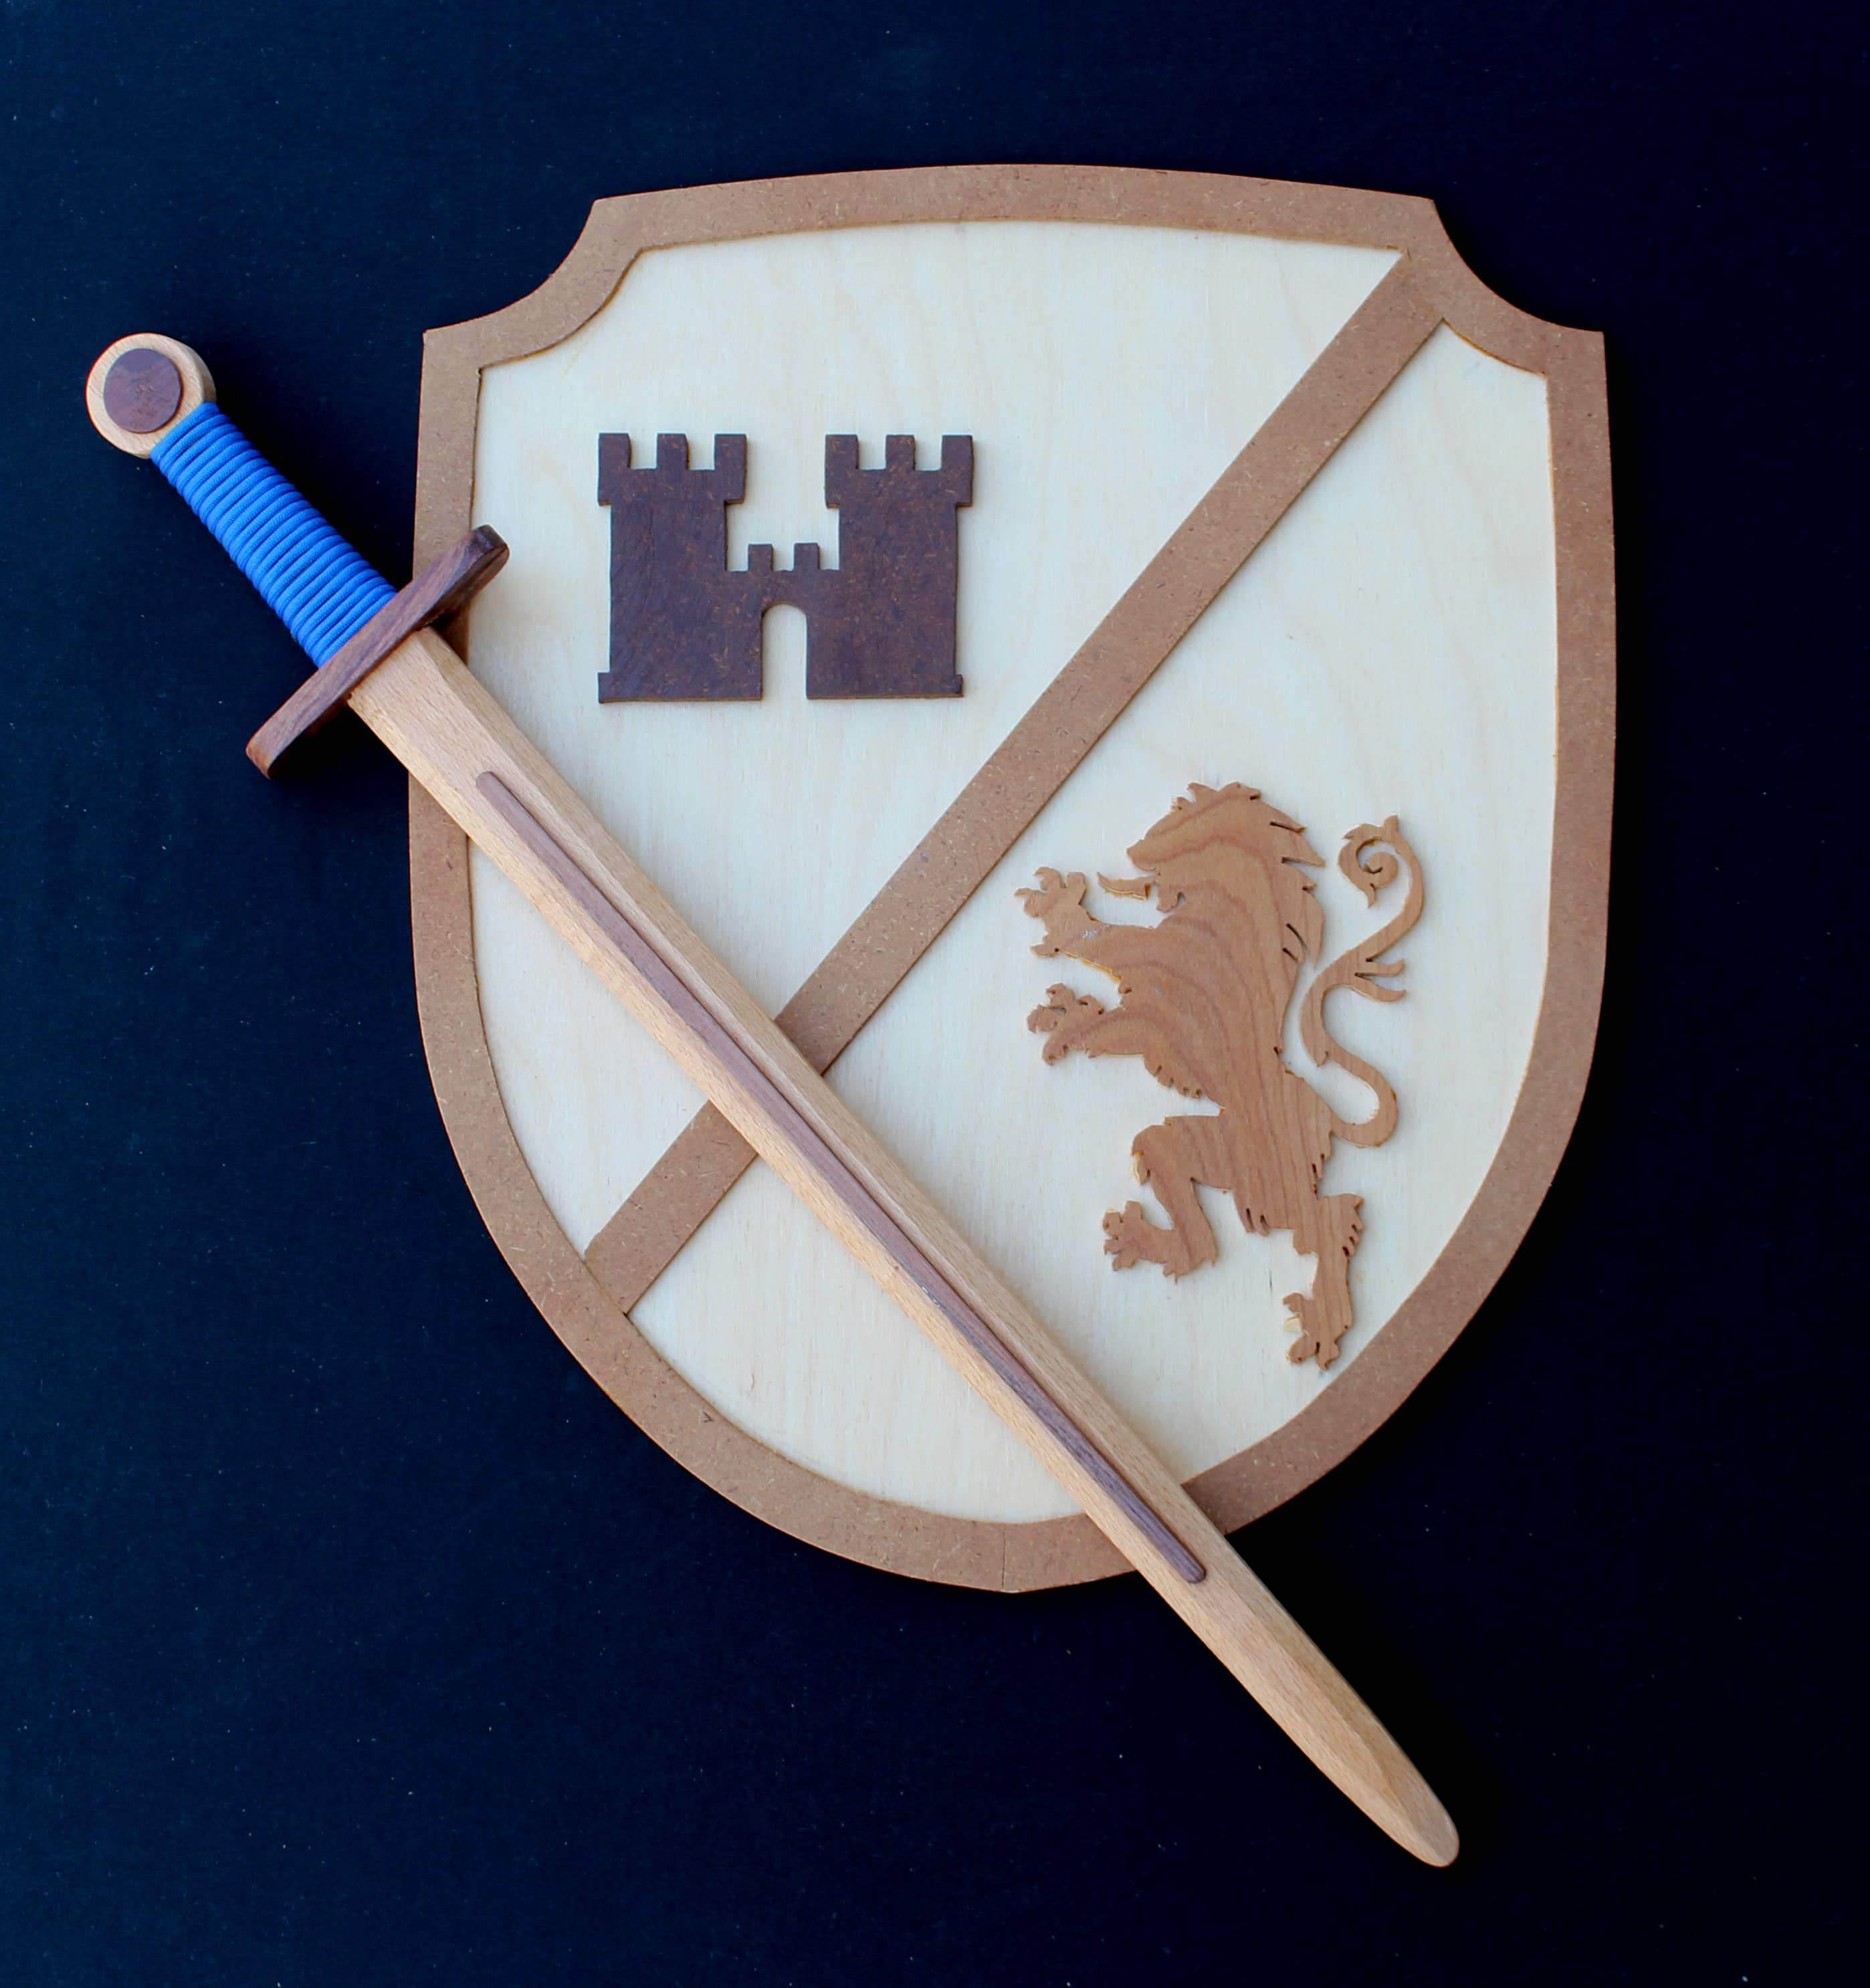 Child's size sword and shield woodworking plan